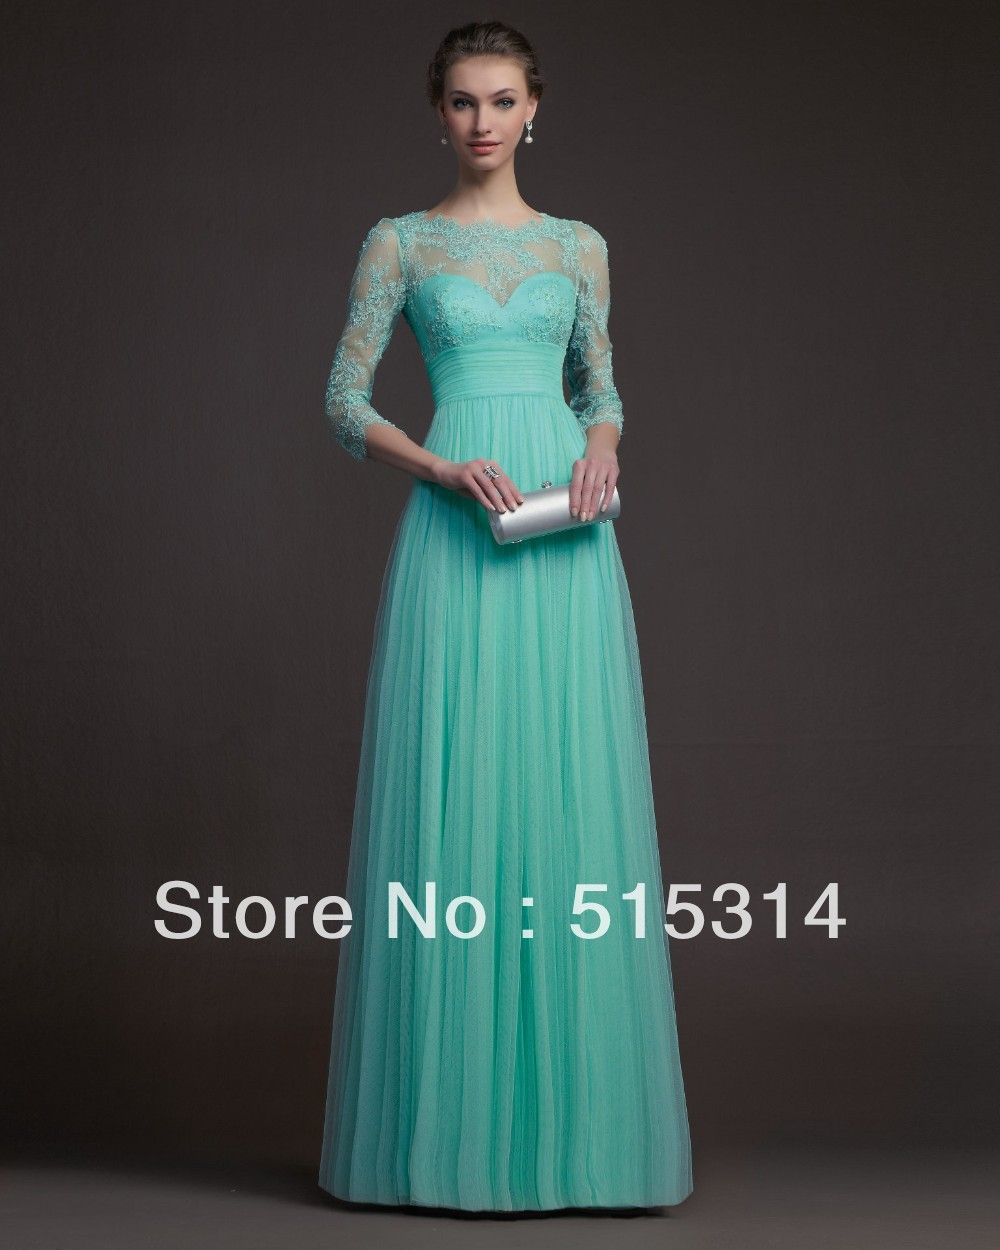 Custom Made 2014 New Fashion A-line Tulle Lace Long Bridesmaid ...